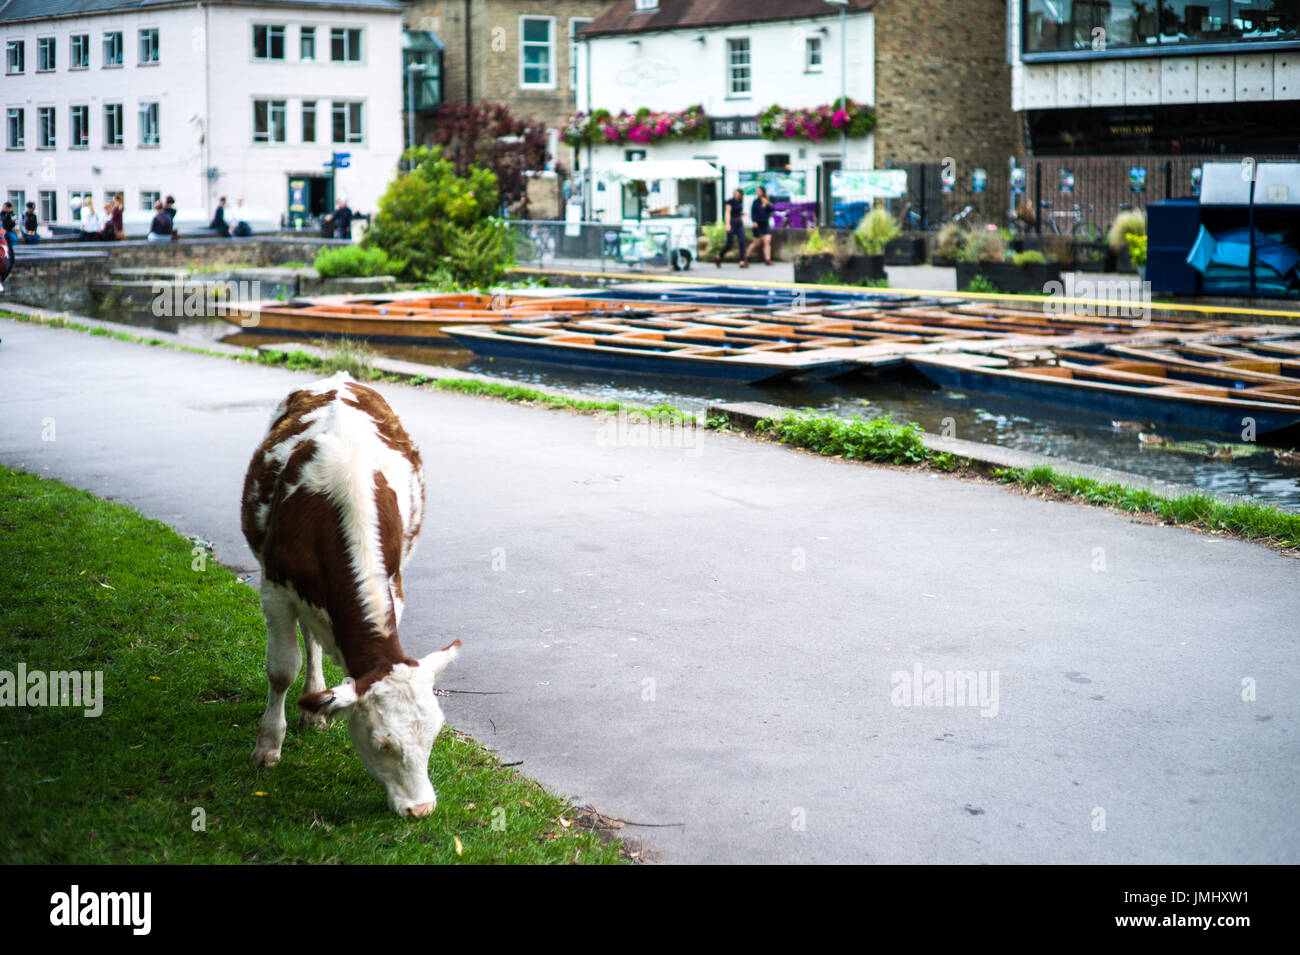 Cambridge Cows - Cows wander freely on the backs in Cambridge, near the River Cam - Stock Image